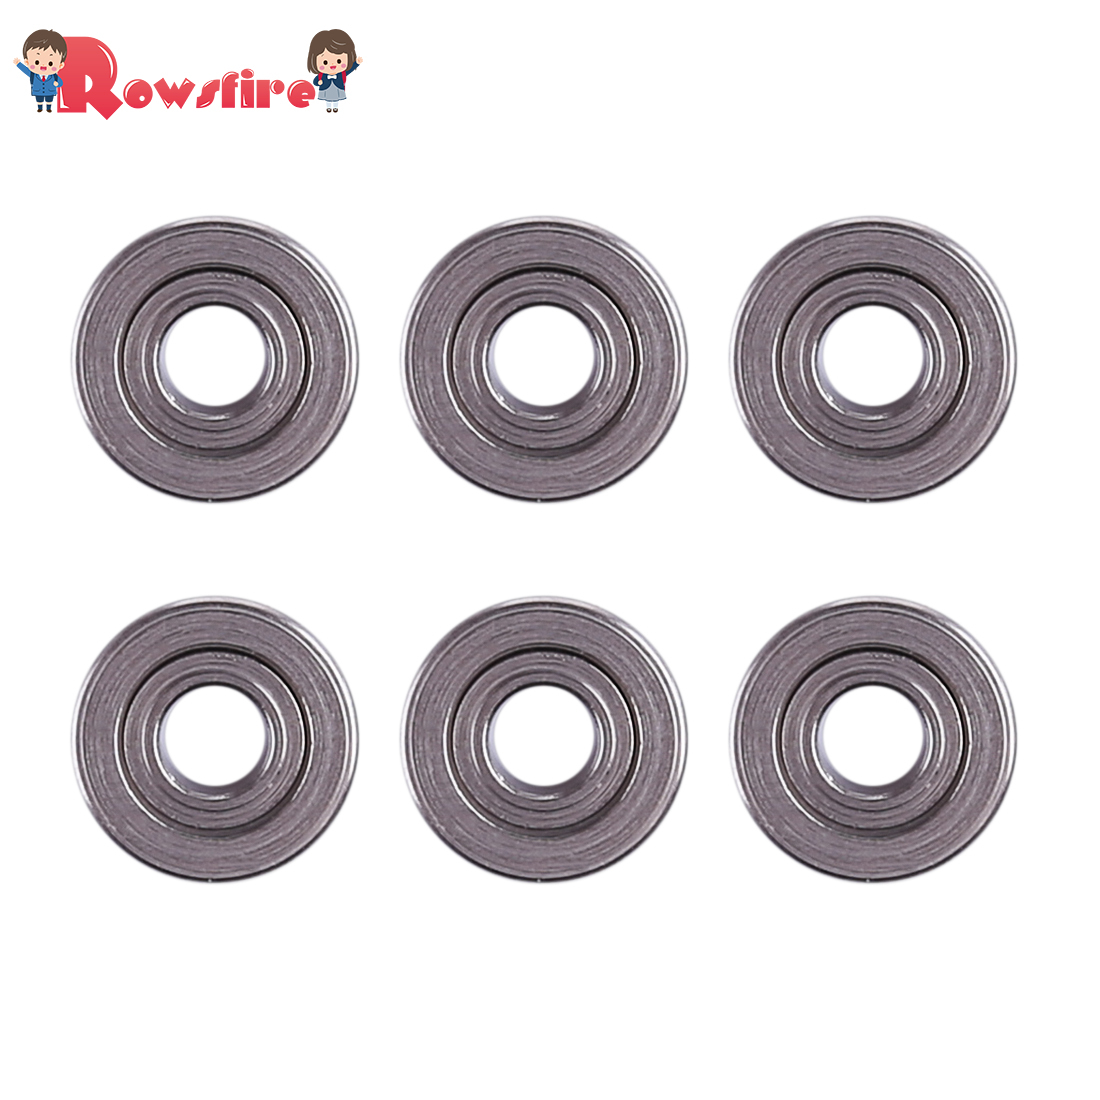 New Hot 6Pcs/Lot 7mm Bearing For JM Gen.9/M4A1/XWE M4 Water Gel Beads Blaster Modification - Silver Black